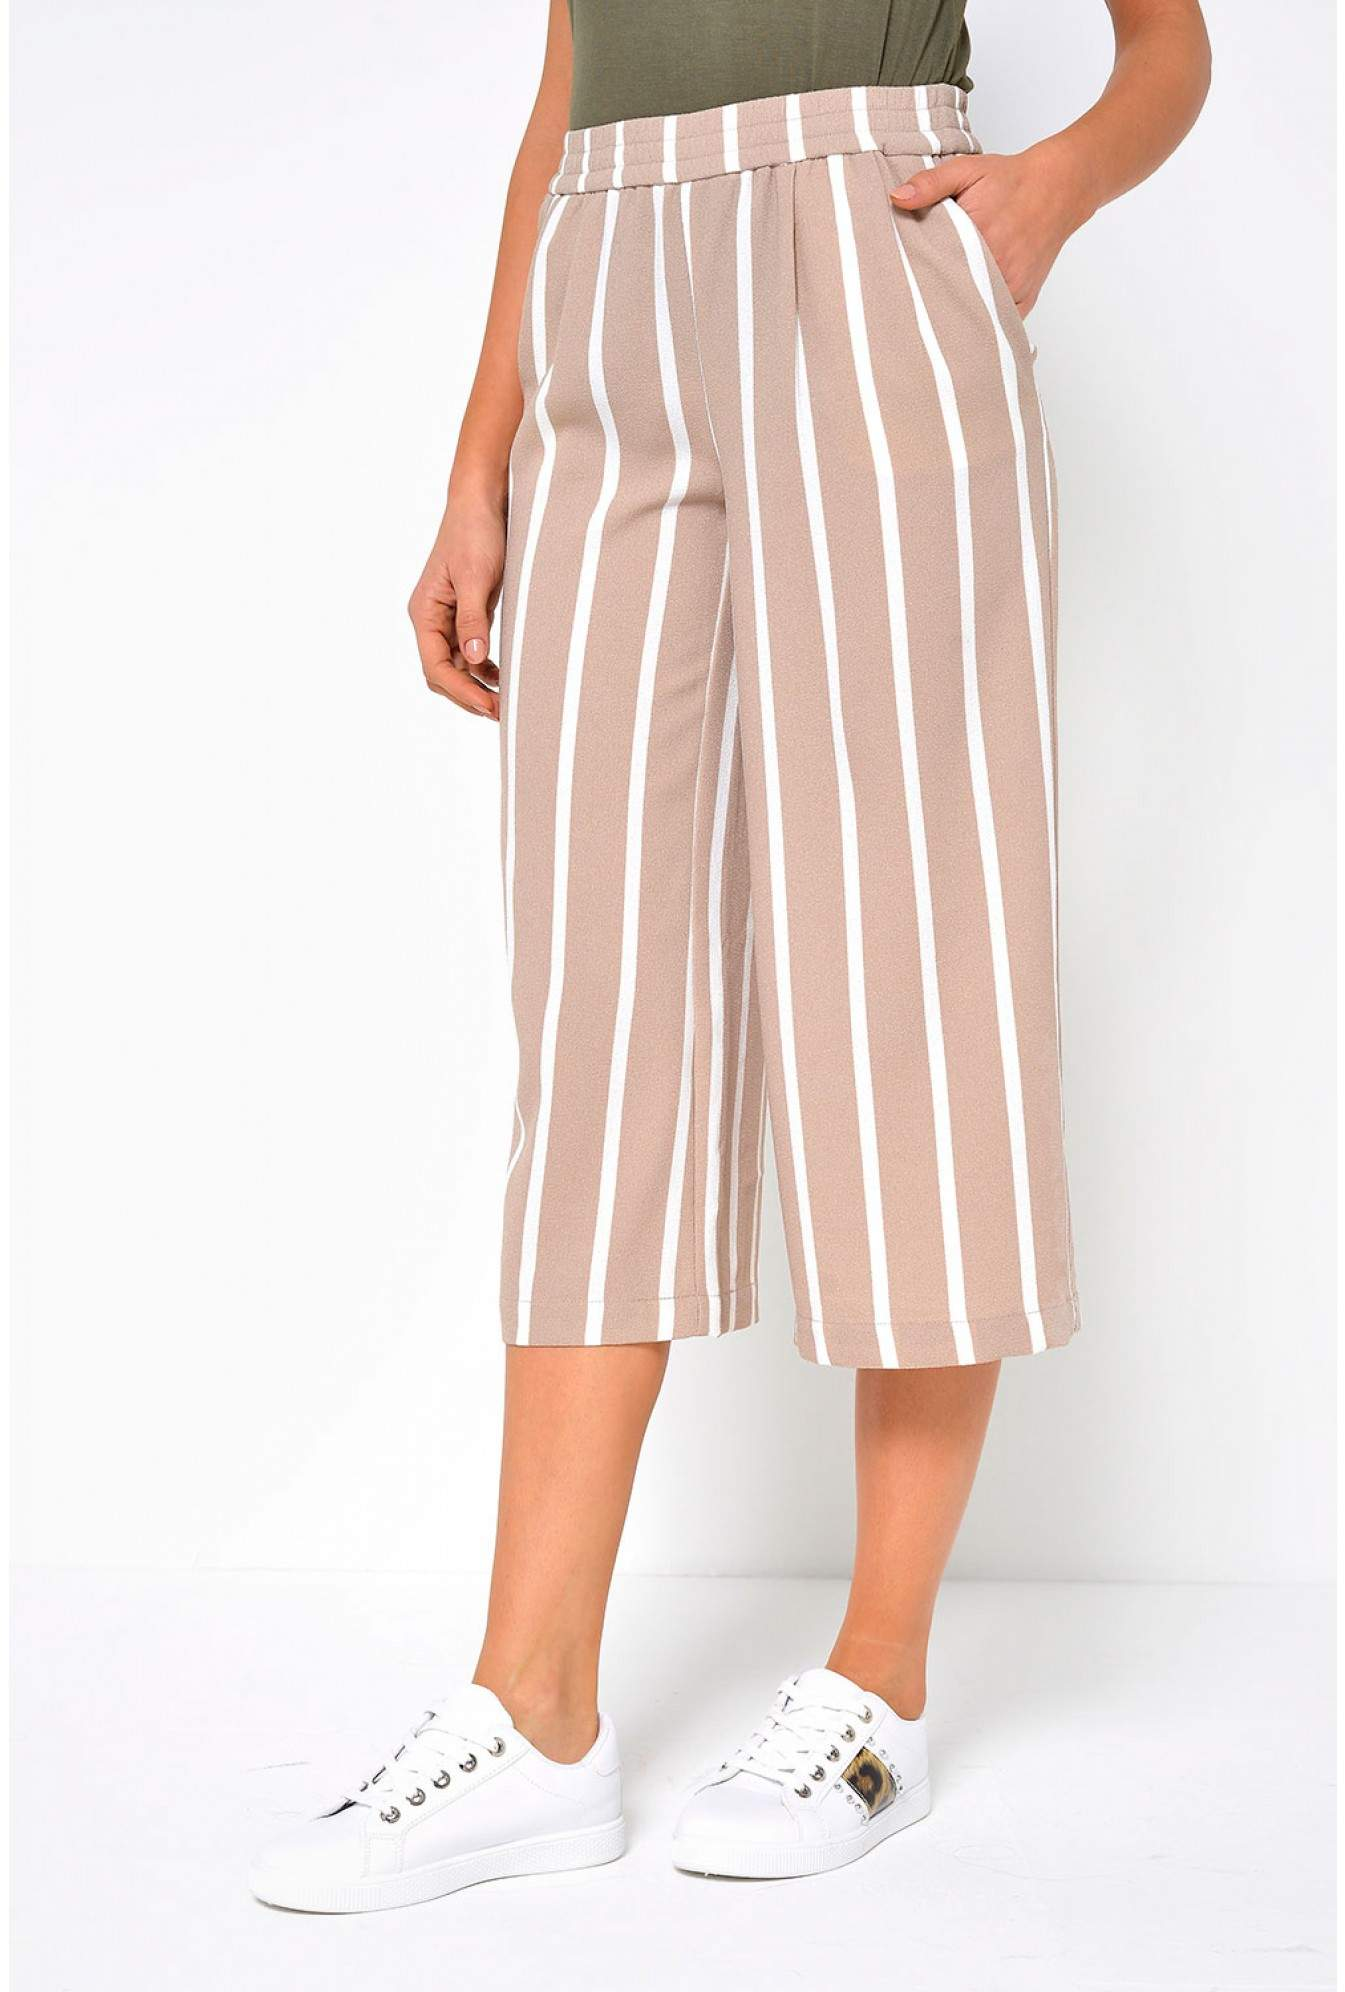 Only Piper Striped Culotte Pants in Stone  a19905518e833